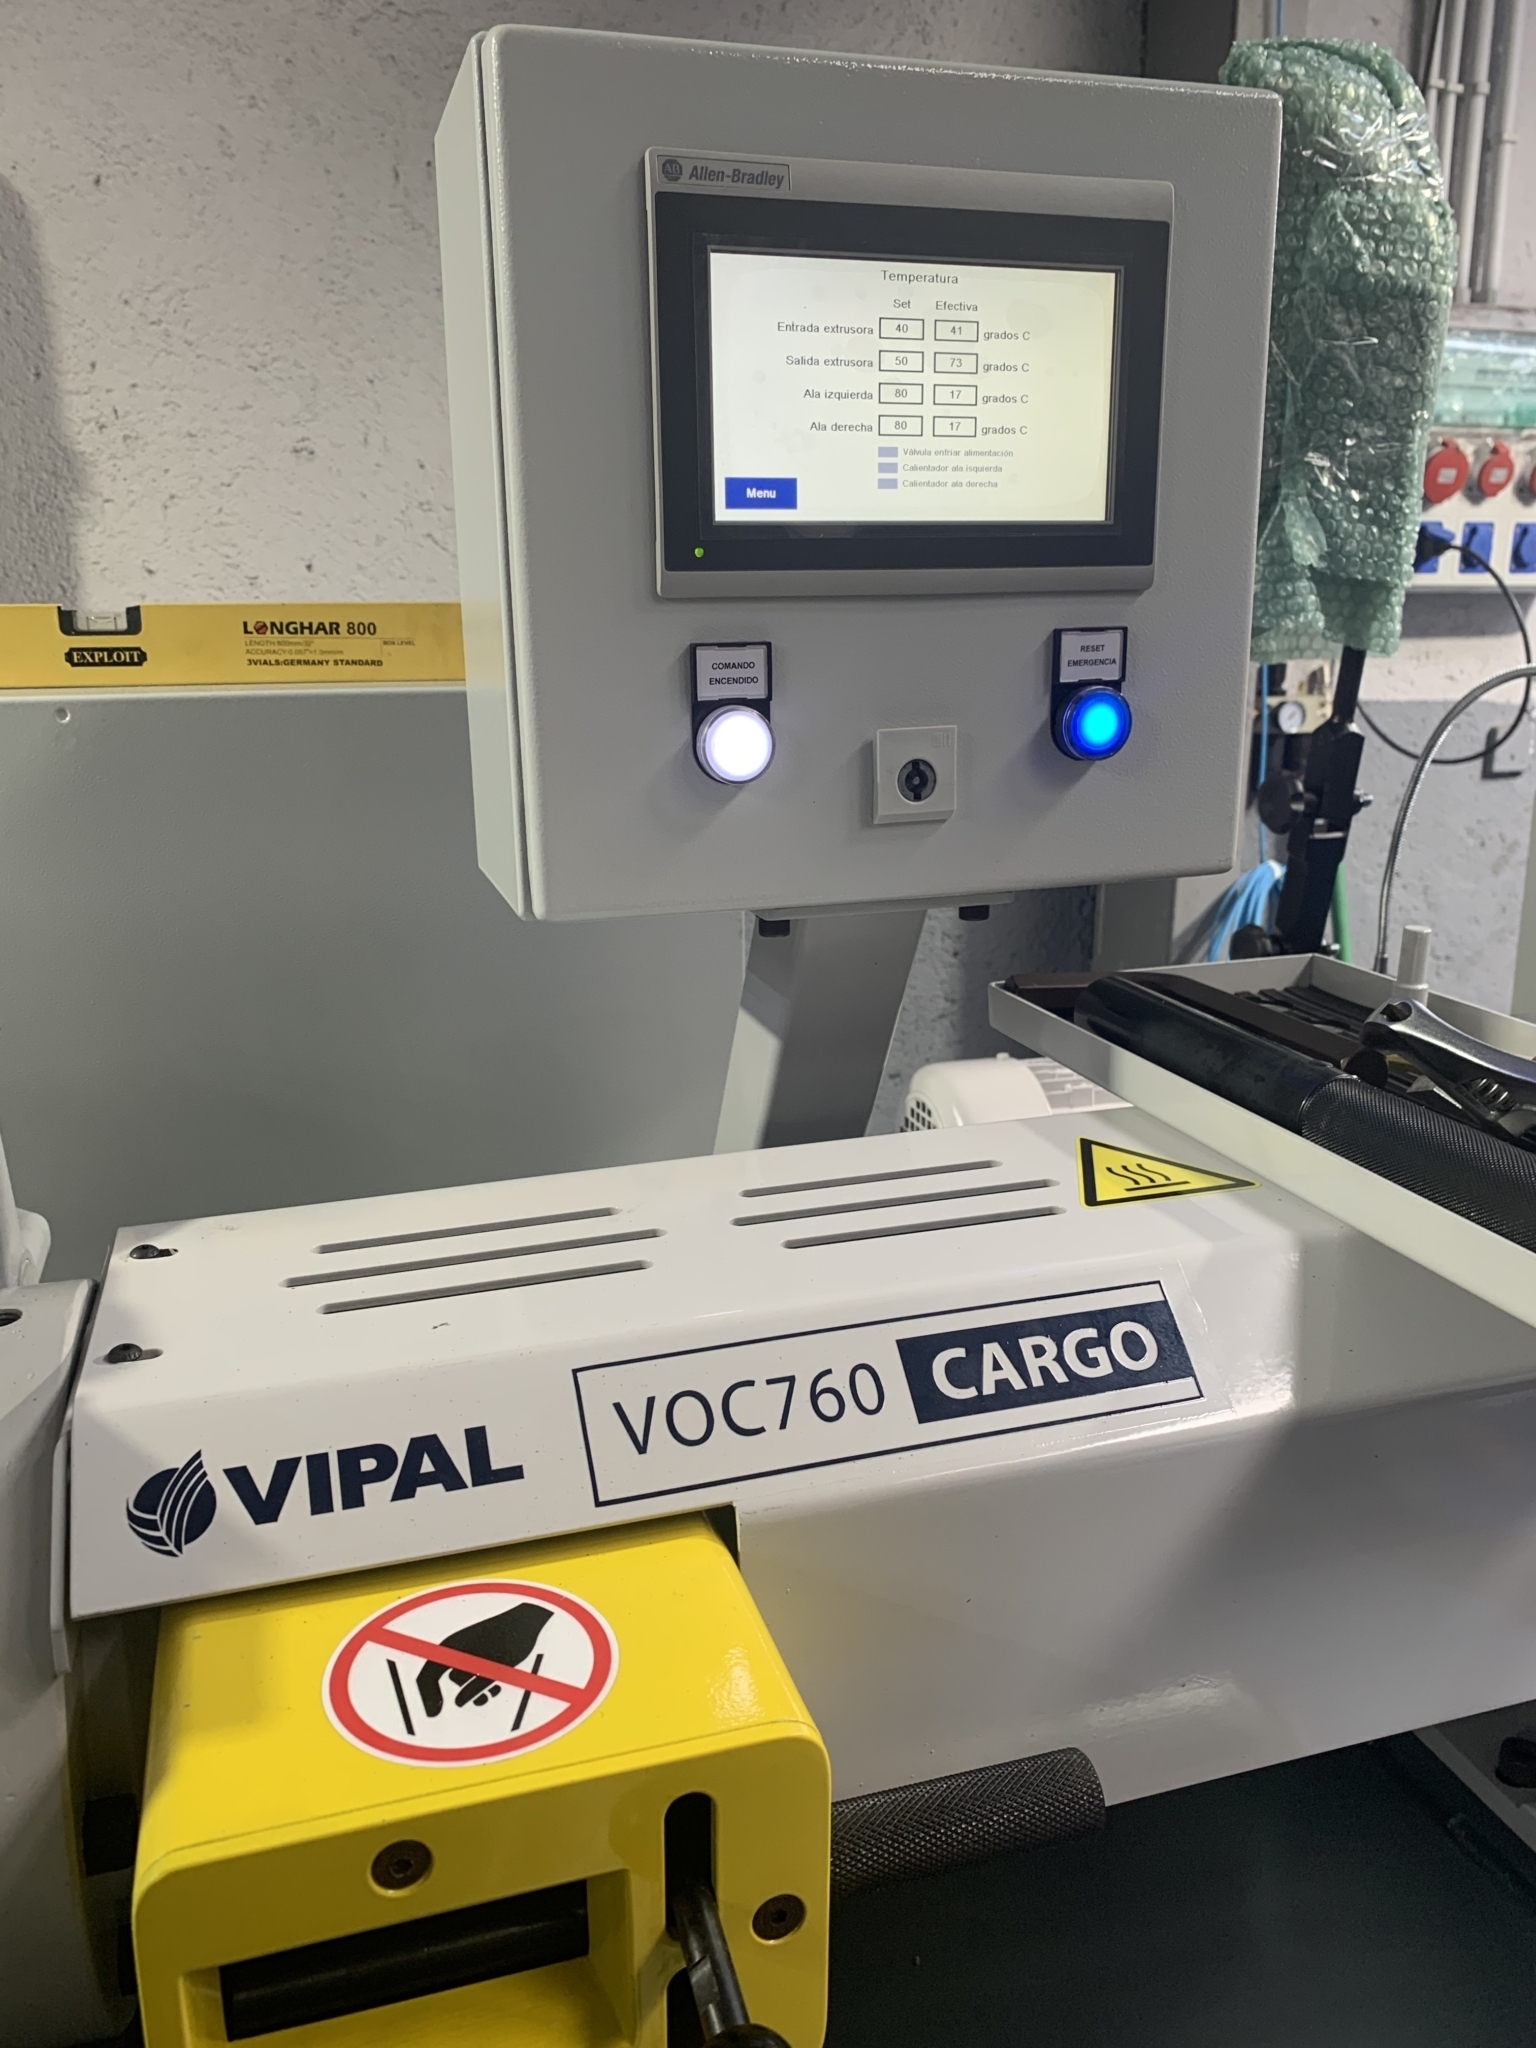 Spanish retreader is first in Europe to buy Vipal machinery